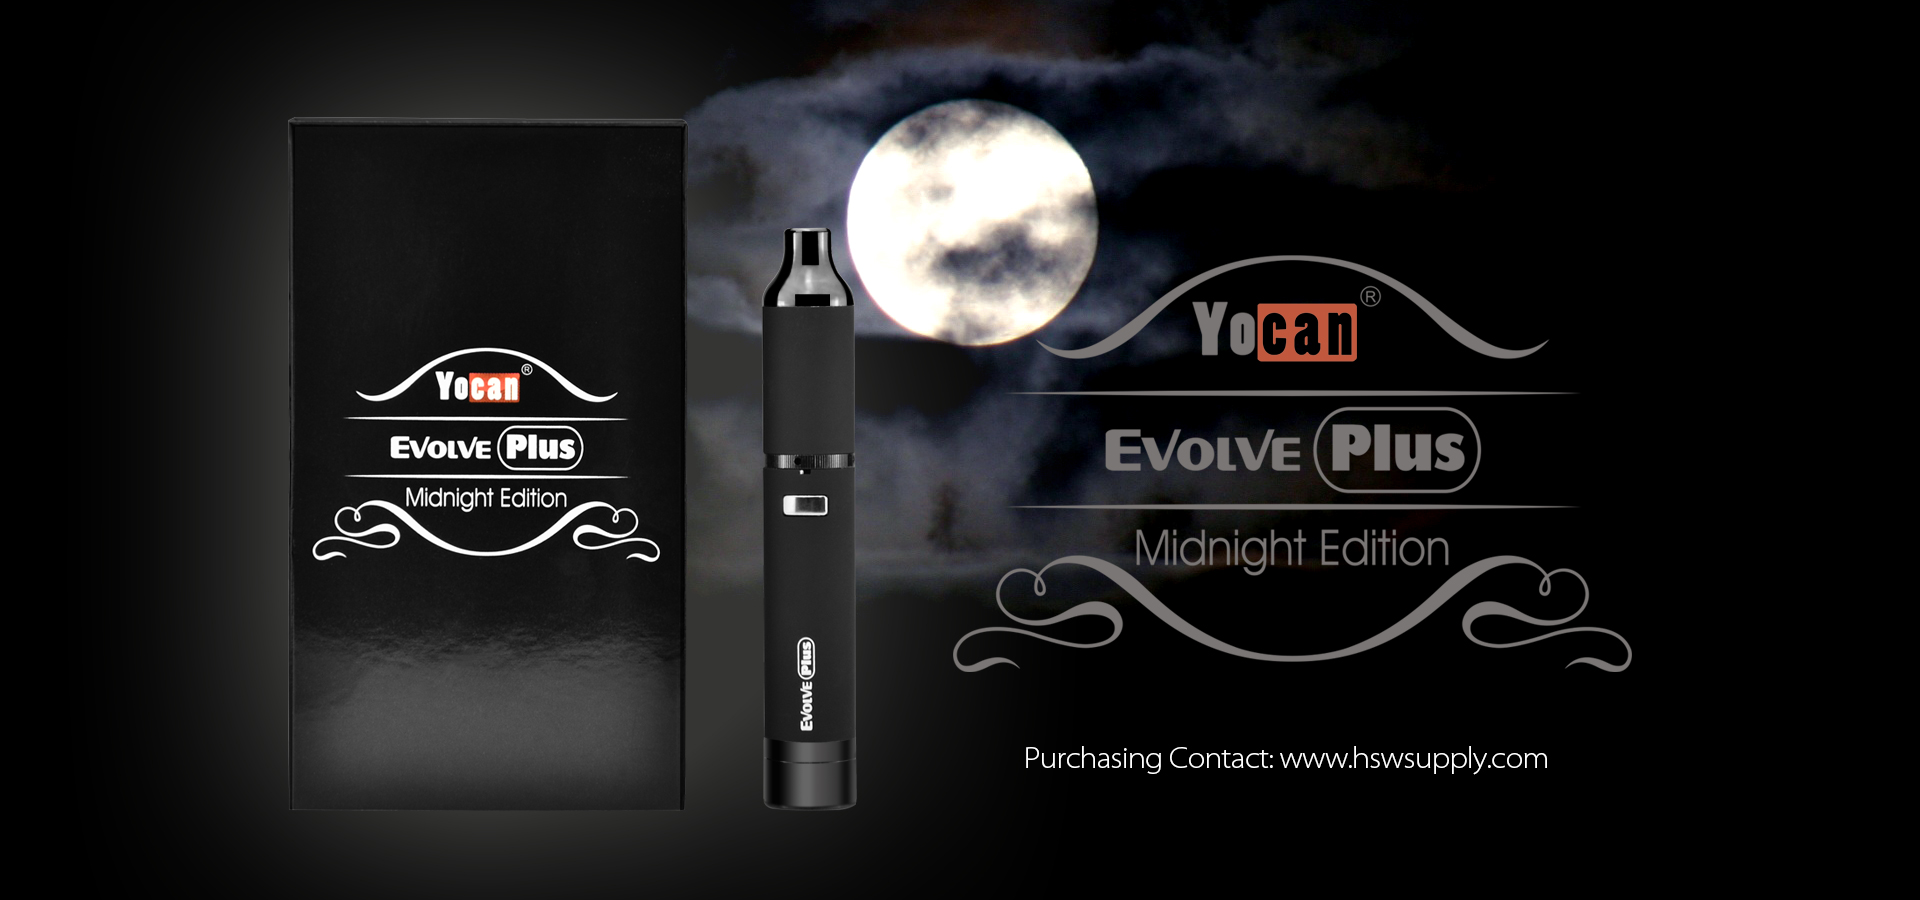 The Yocan evolve plus Midnight Edition is sleek and stealthy in all black